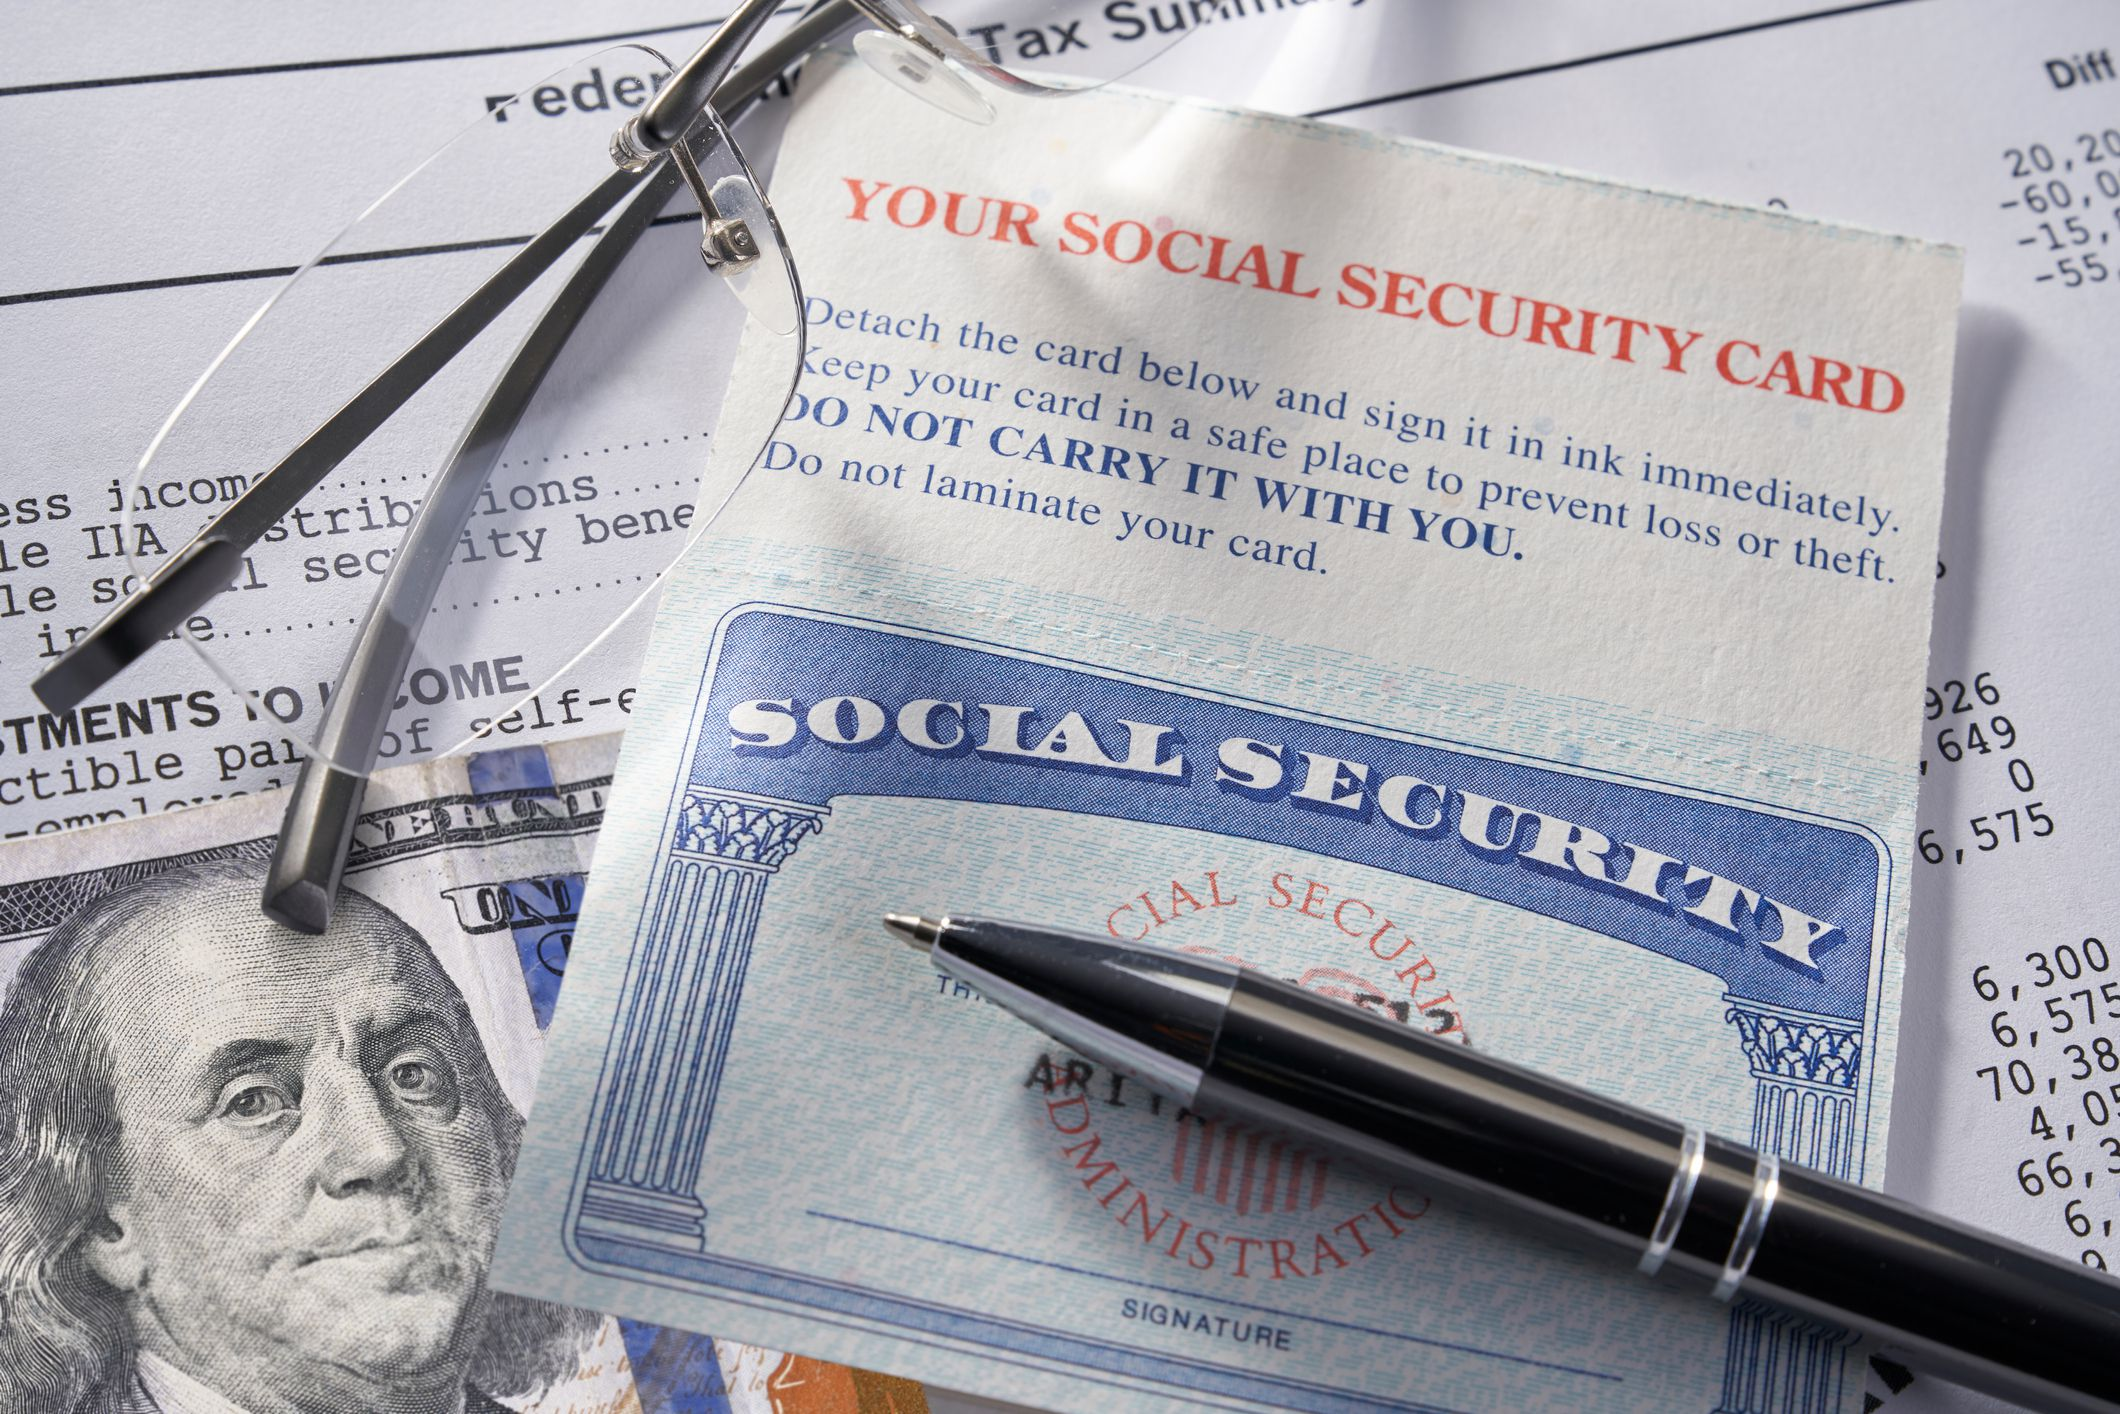 Updating social security card dating websites chennai